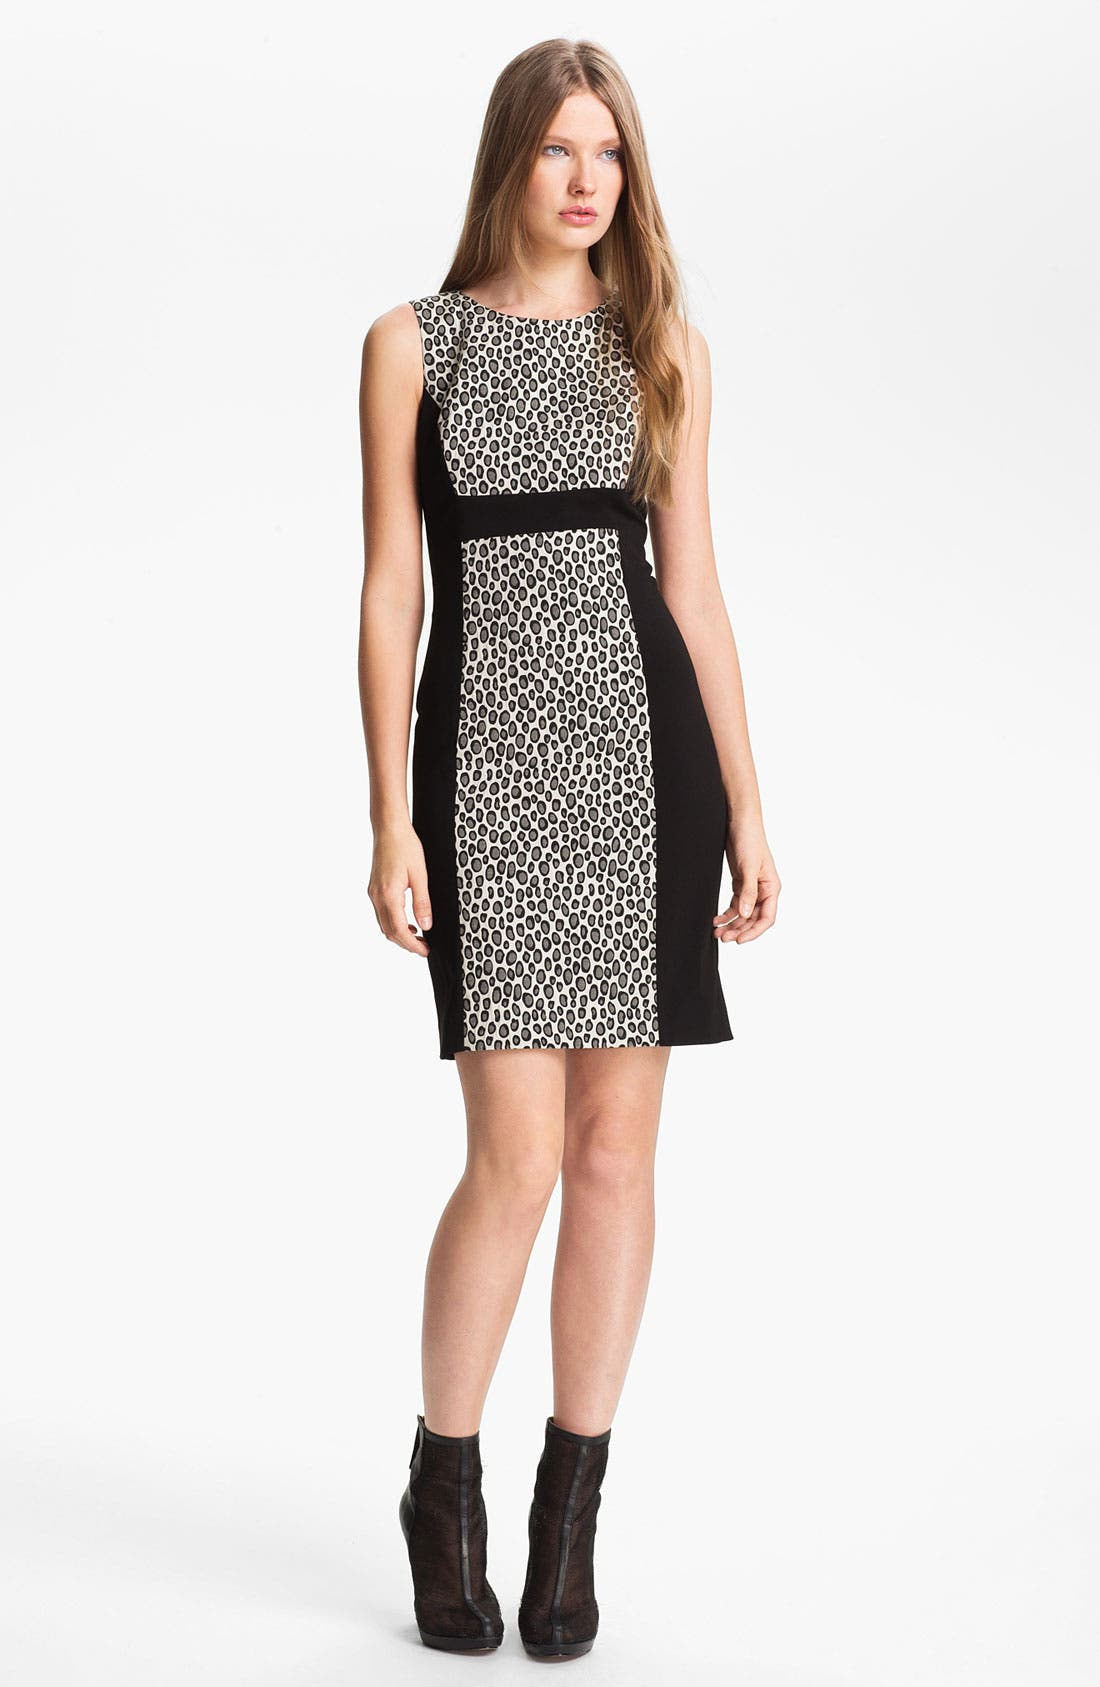 Alternate Image 1 Selected - Rachel Zoe 'Ricky' Contrast Panel Sheath Dress